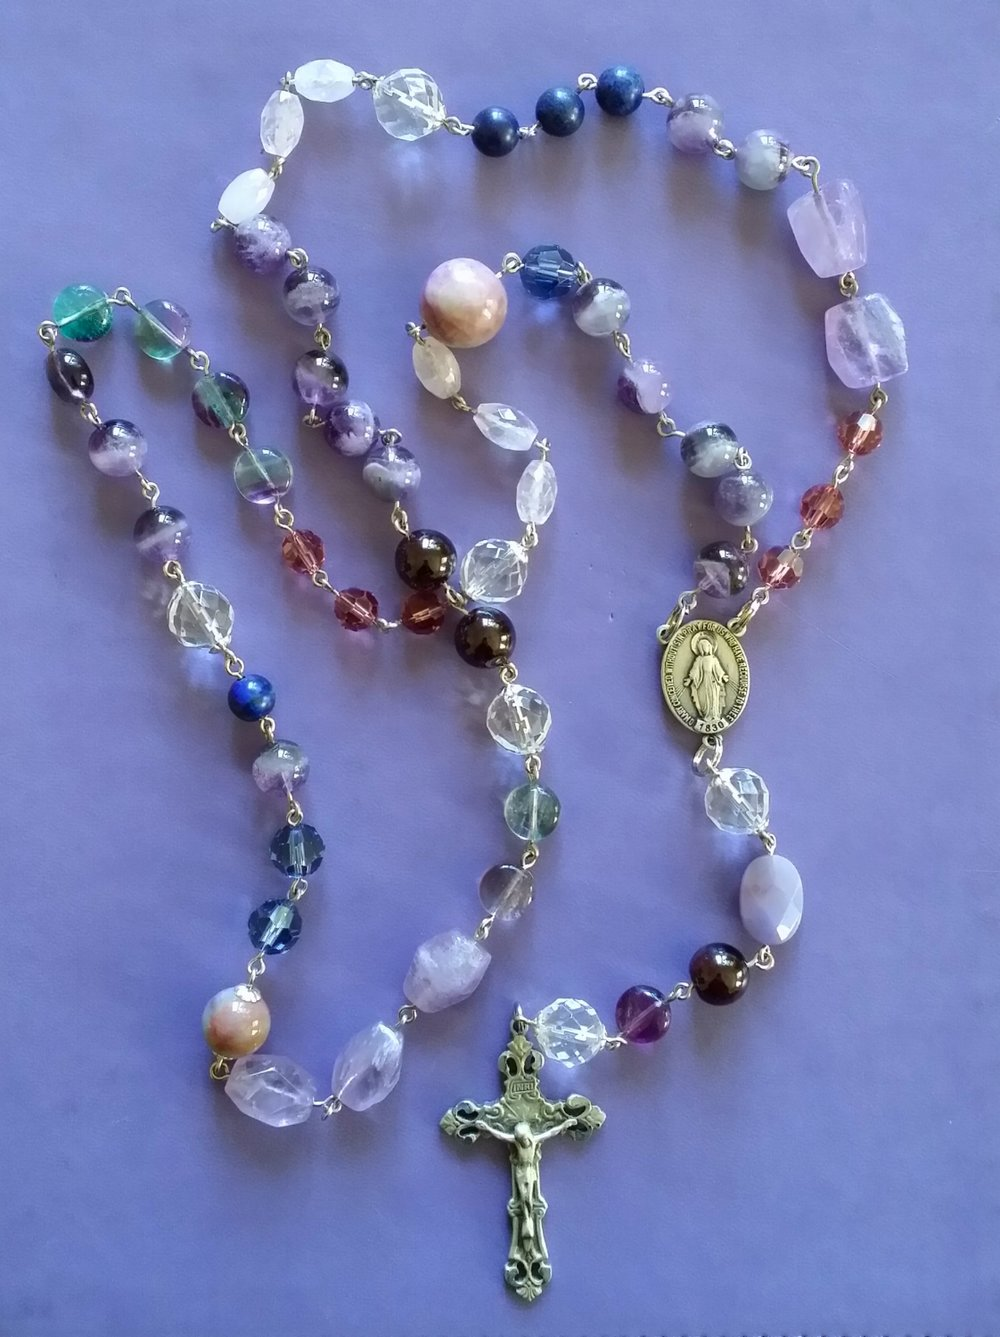 We offer finely crafted traditional five decade rosaries, seven decade Chakra rosaries, and seven decade Franciscan Crown rosaries.